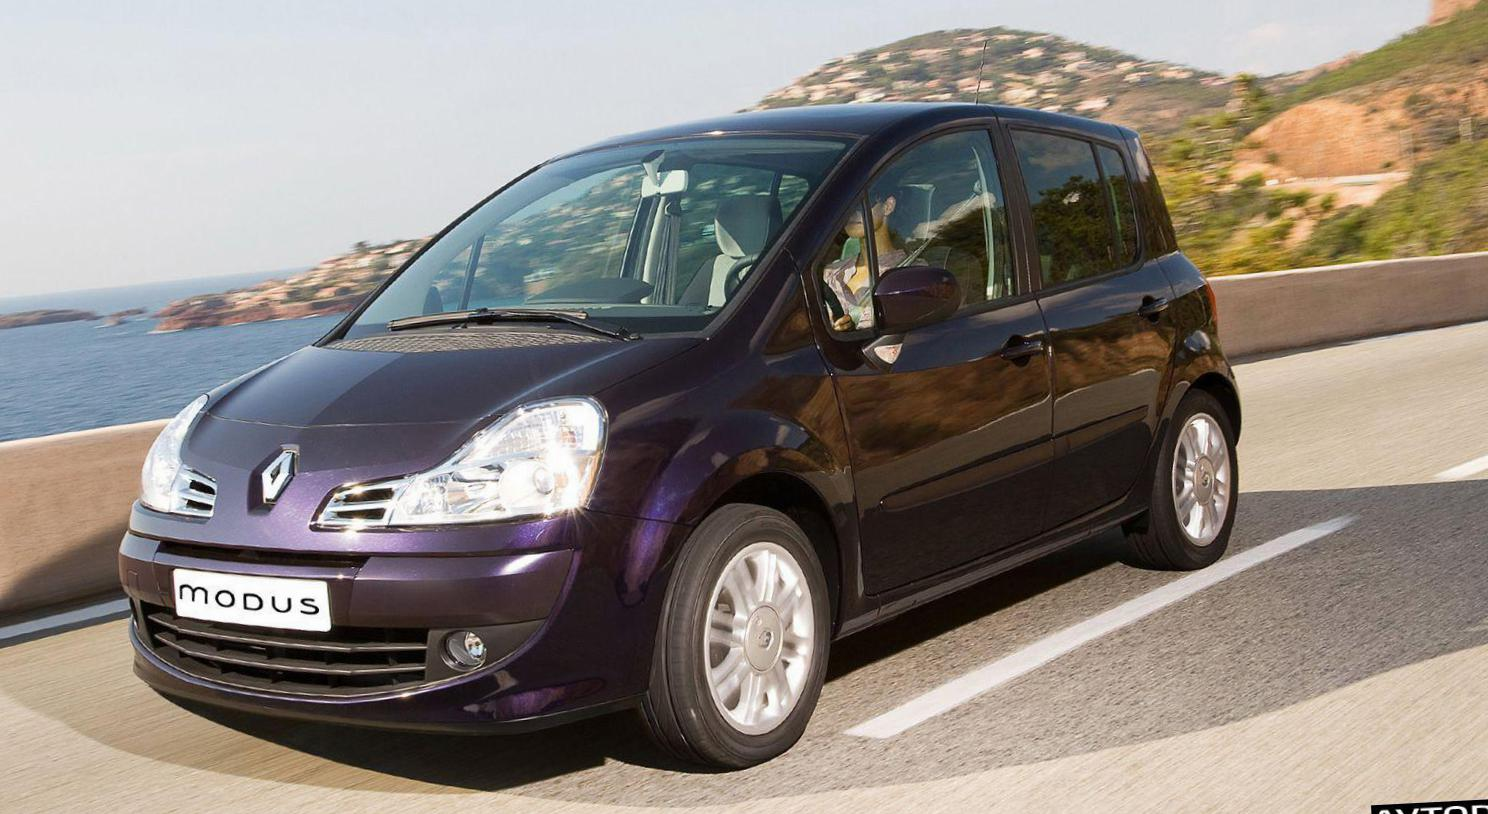 Modus Renault review 2010